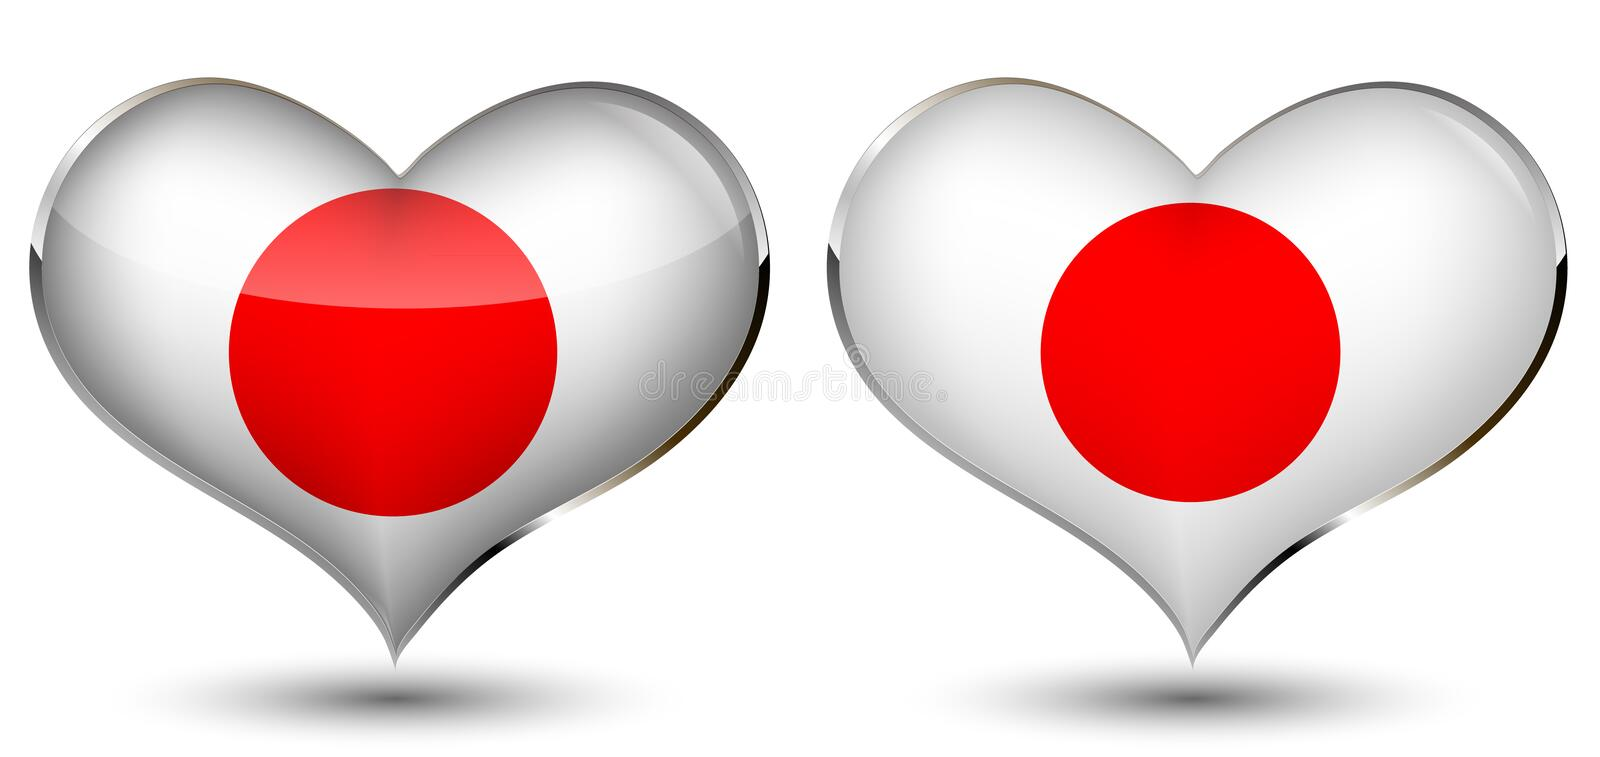 A heart with the flag of japan royalty free illustration